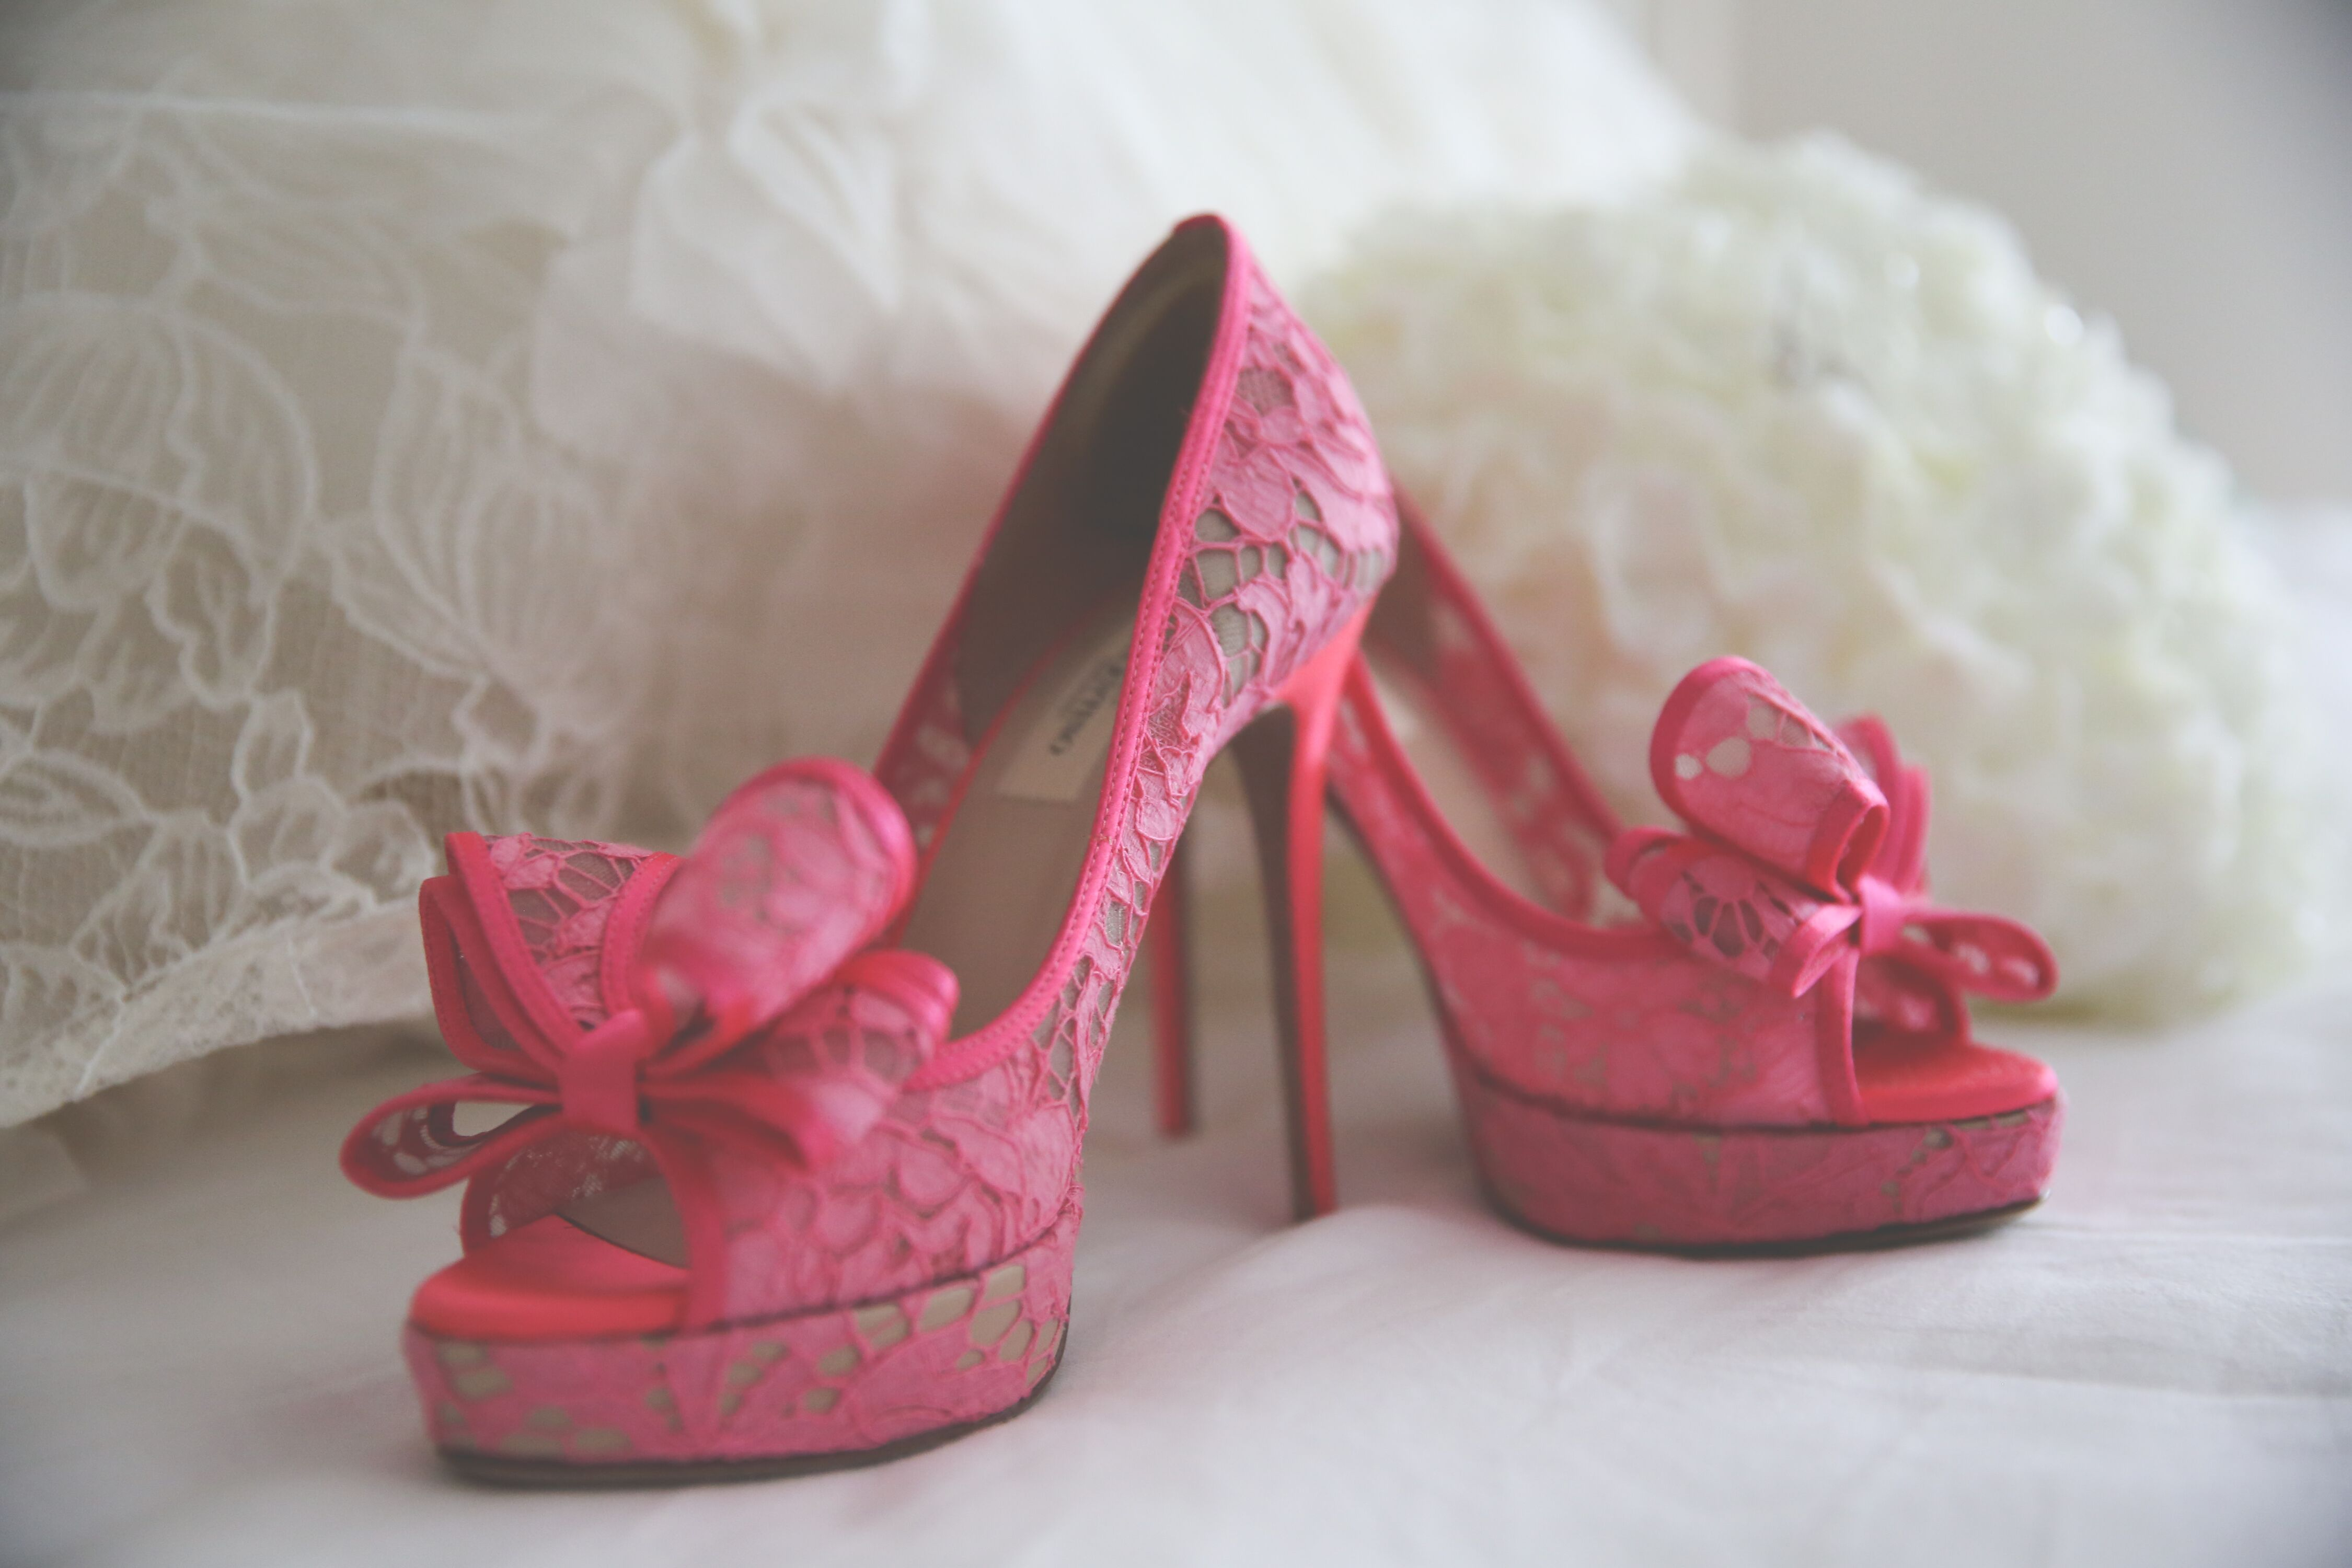 Valentino Pink Lace Wedding Shoes With Bows